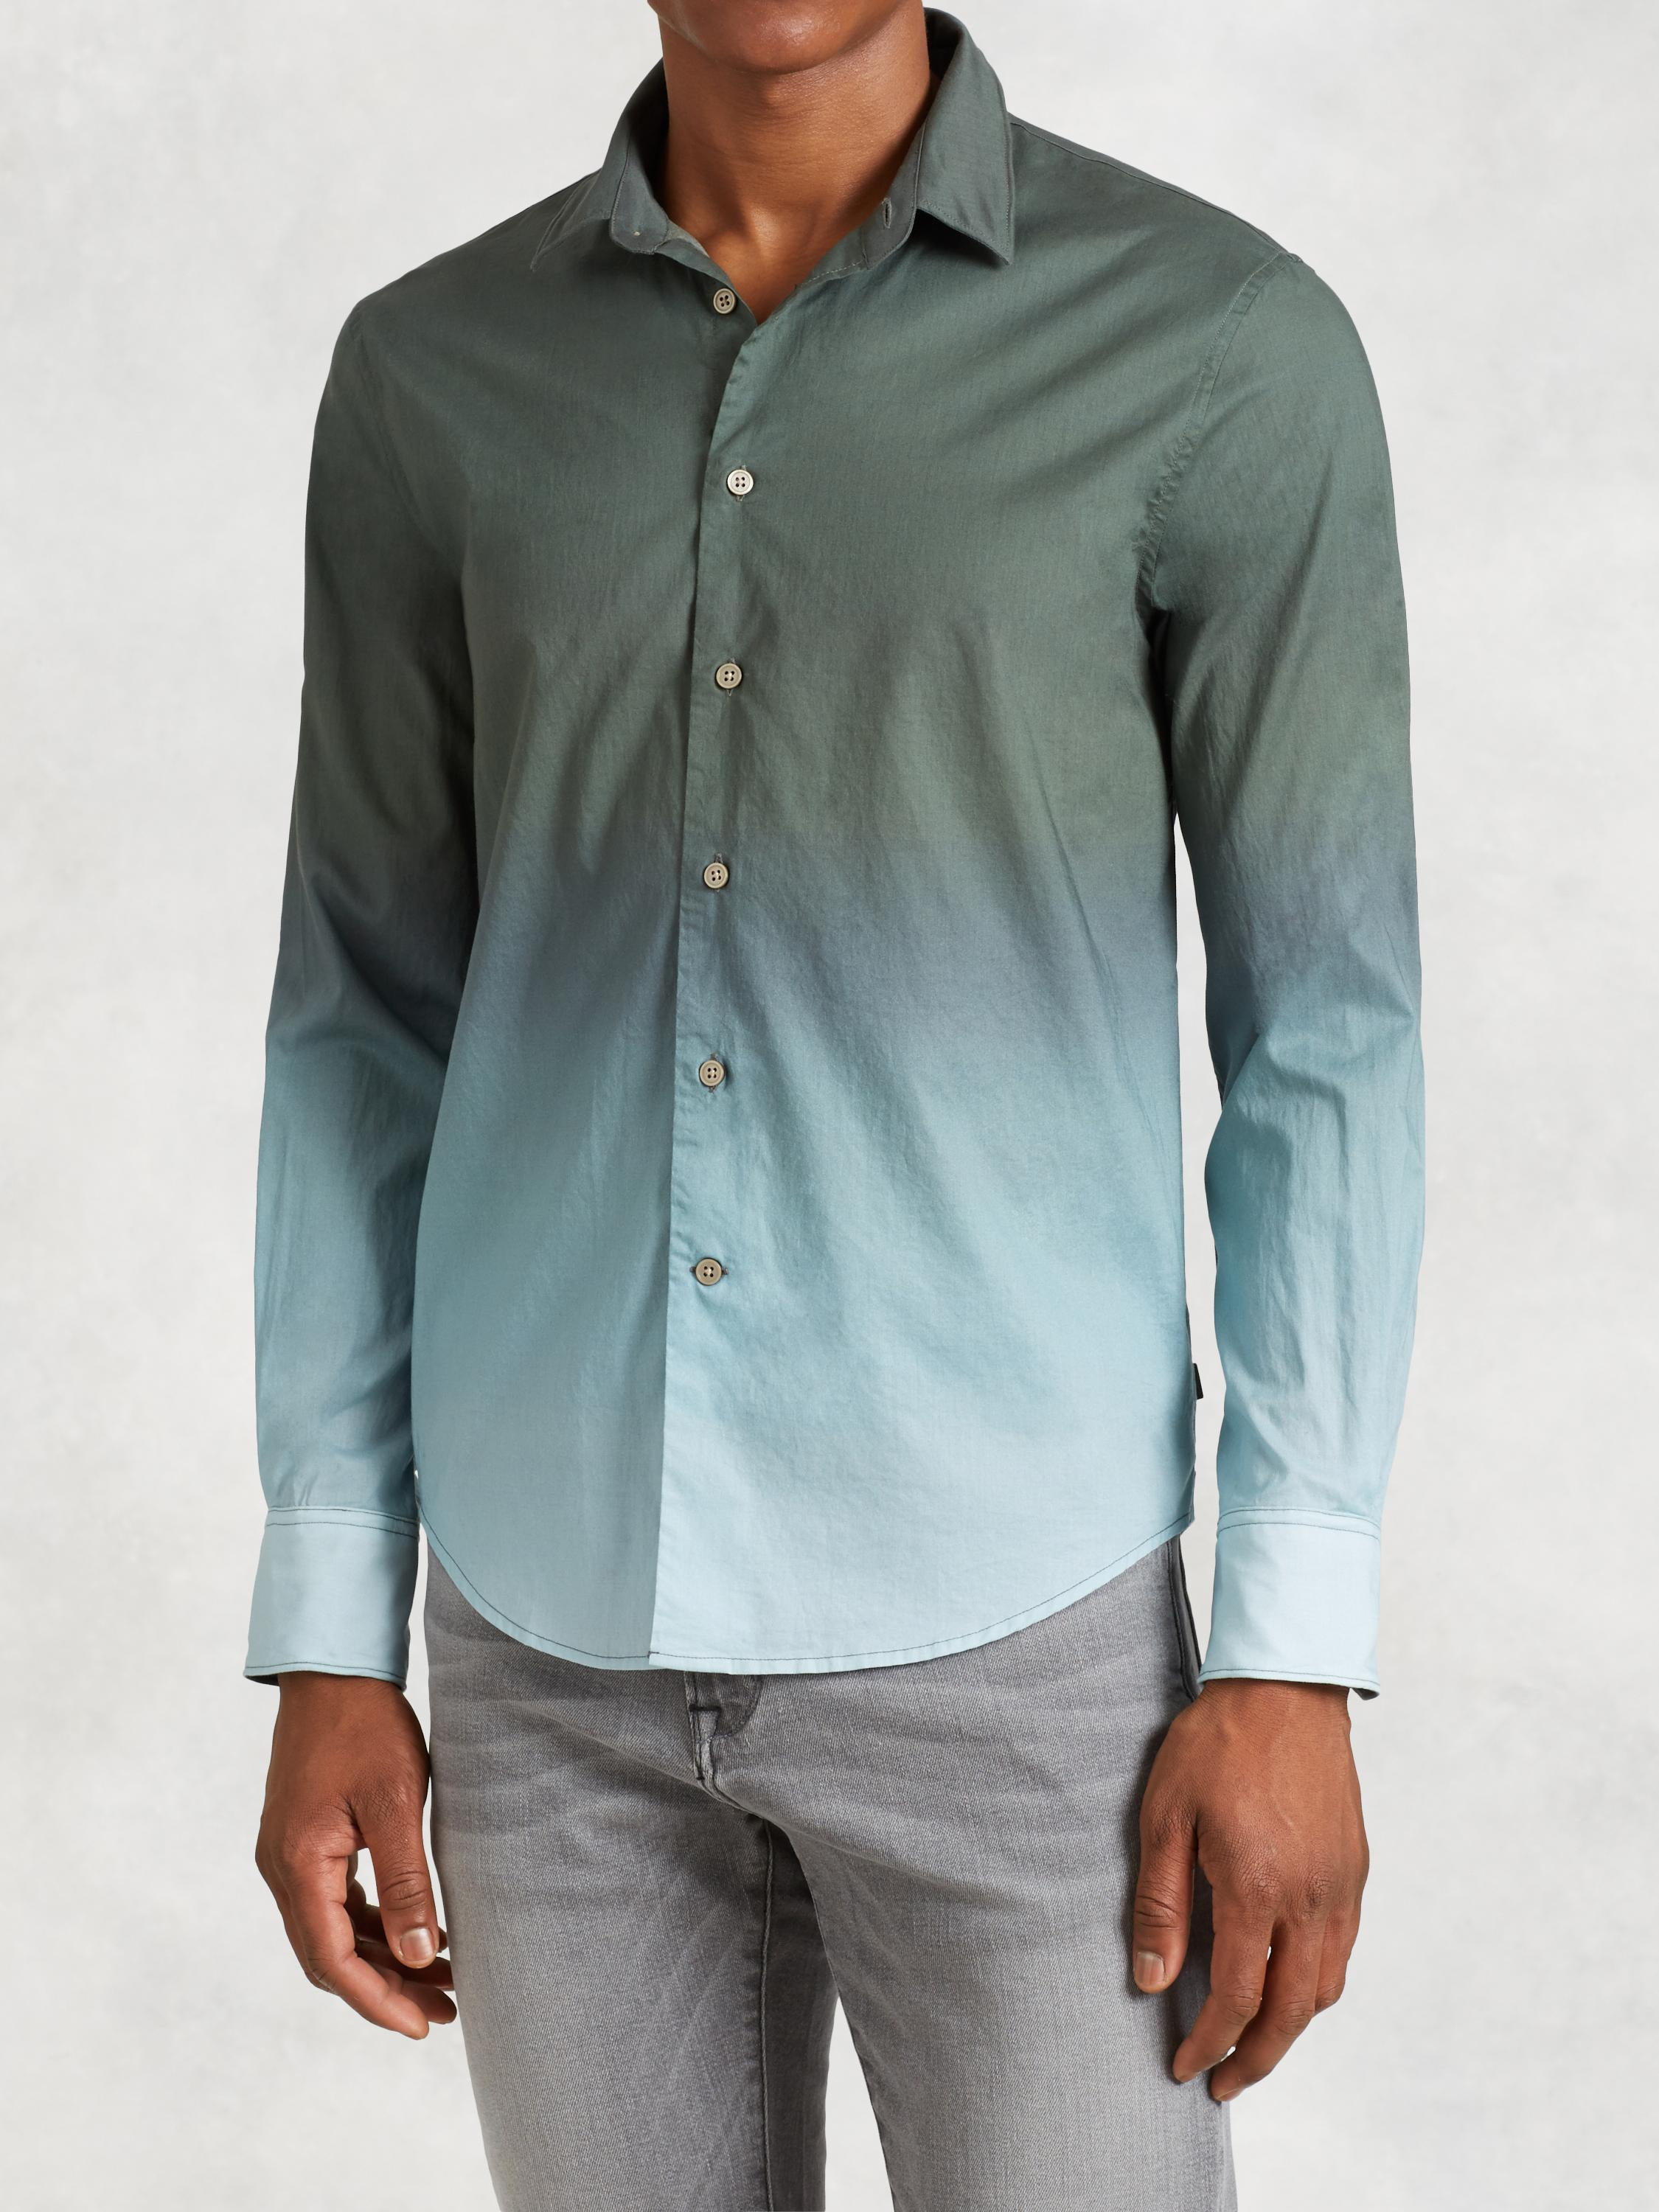 Cotton Degrade Shirt